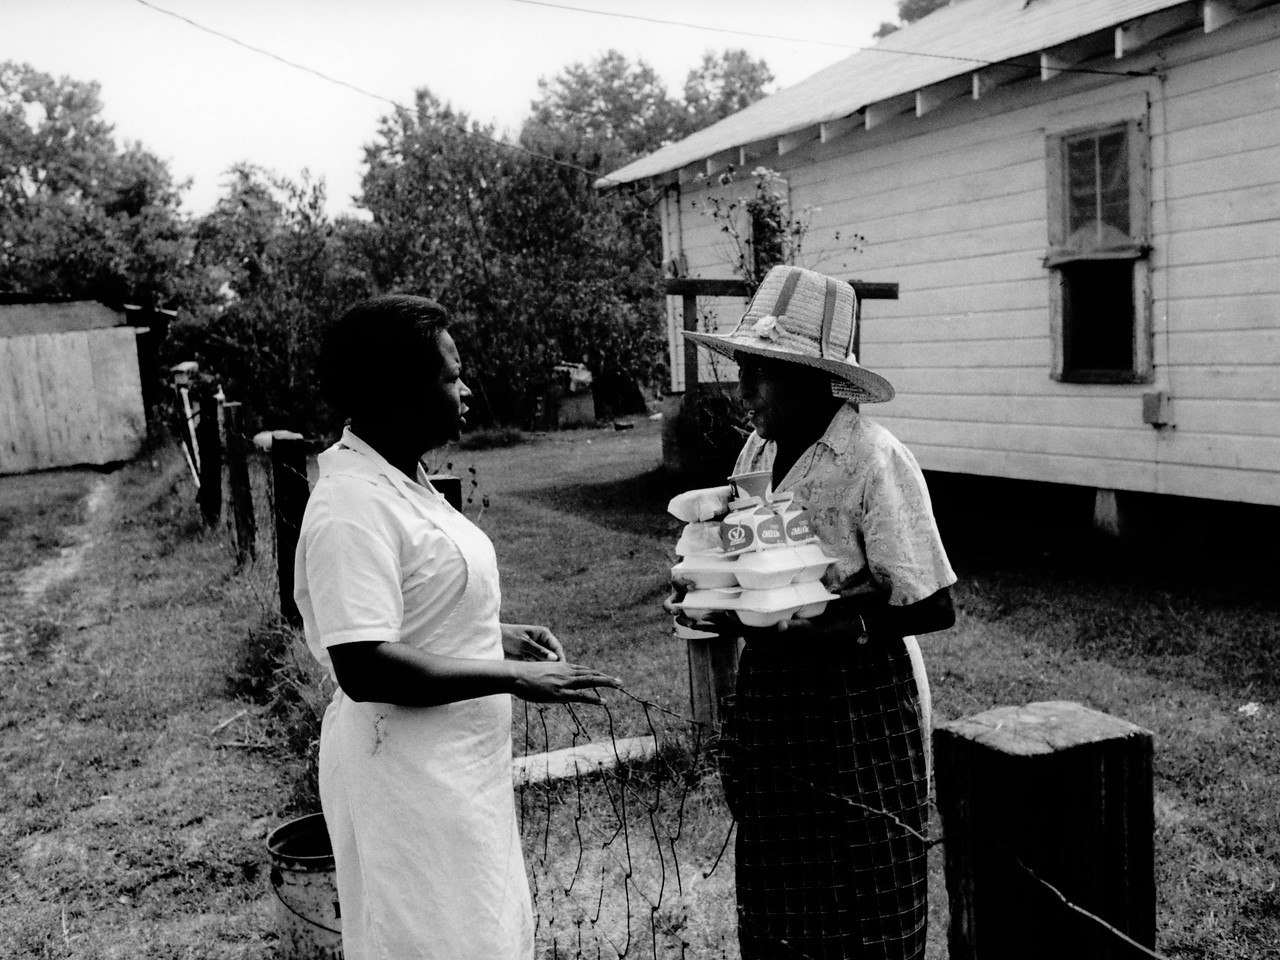 """When VISTA Alice Fay White, 23, of Opelousas, Louisiana, originally arrived in Little Rock in 1972, there was no assignment for her, so she began to seek funds and support for a senior citizen hot lunch program in Sweet Home, Arkansas. She got her funding through a Community Action Program emergency food and medical program grant, and she became the """"coordinator"""" to keep the program going, working in the kitchen preparing food and delivering the lunches. In this photo, a staff member delivers lunch to an elderly woman in Sweet Home. (© 1972 Corporation for National and Community Service - Office of Public Affairs)"""